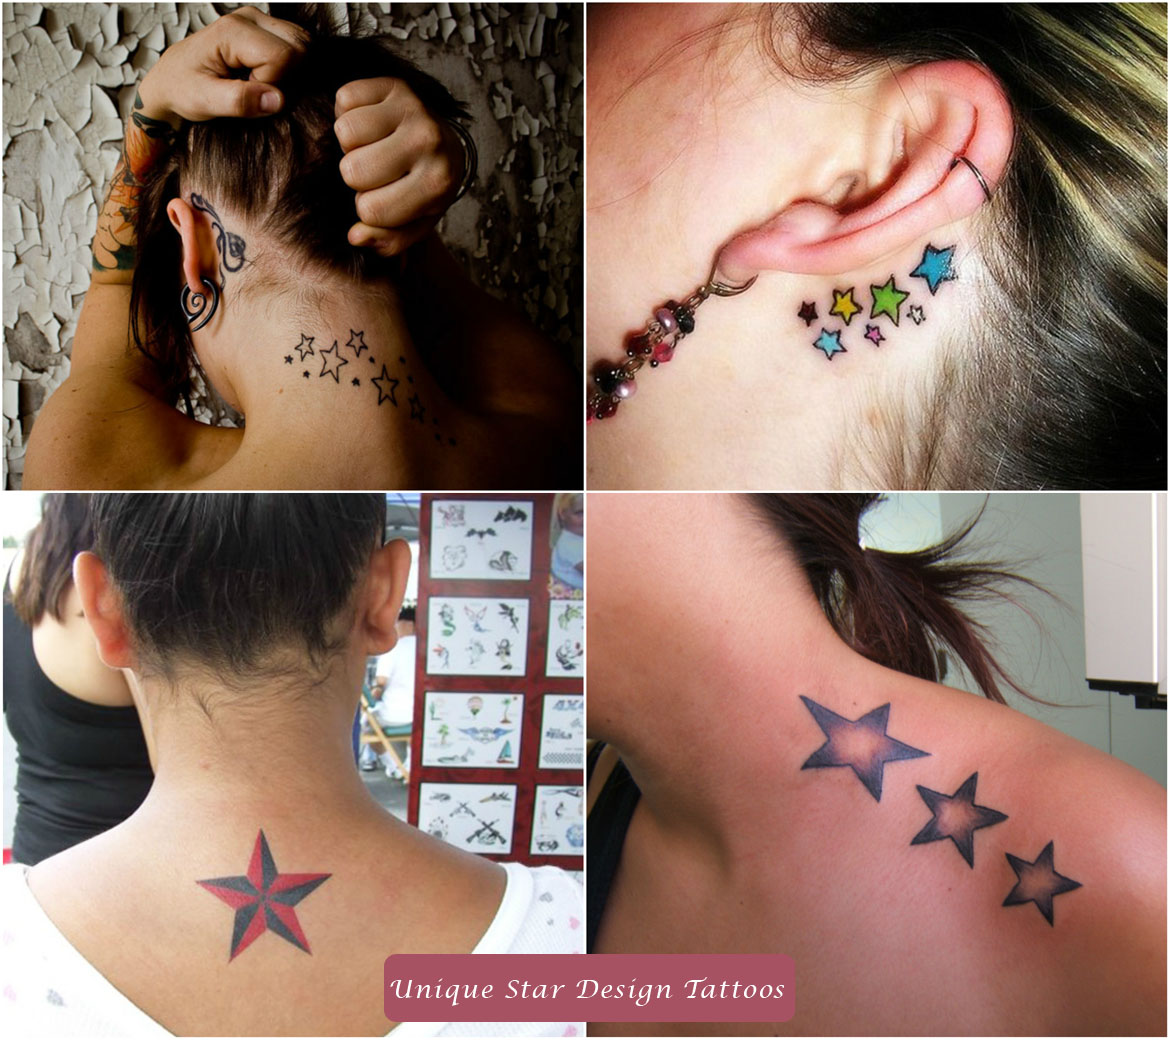 Unique Star Design Tattoos